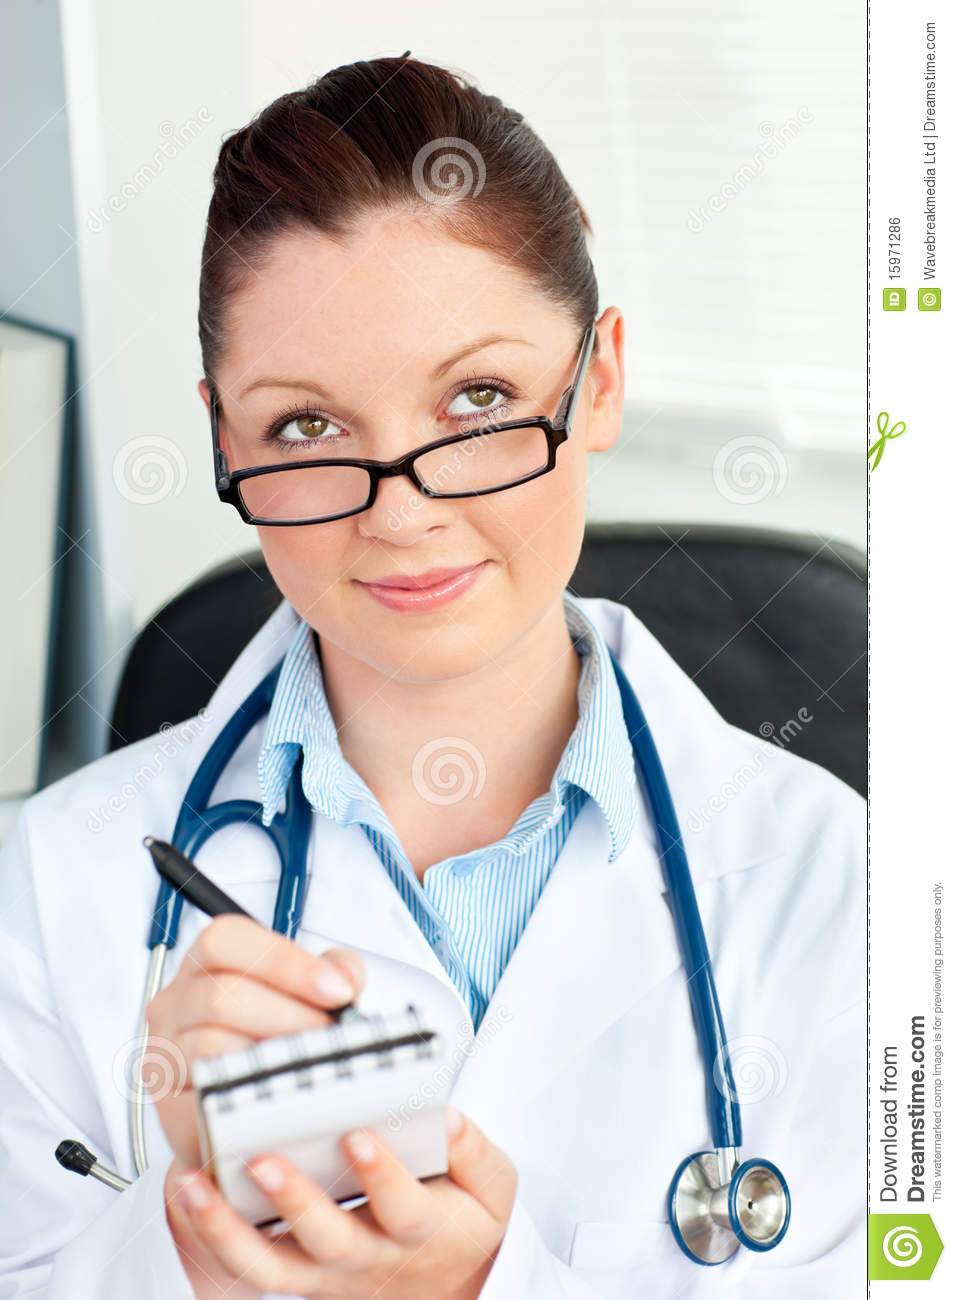 2 female doctors take on their muscular patient 7